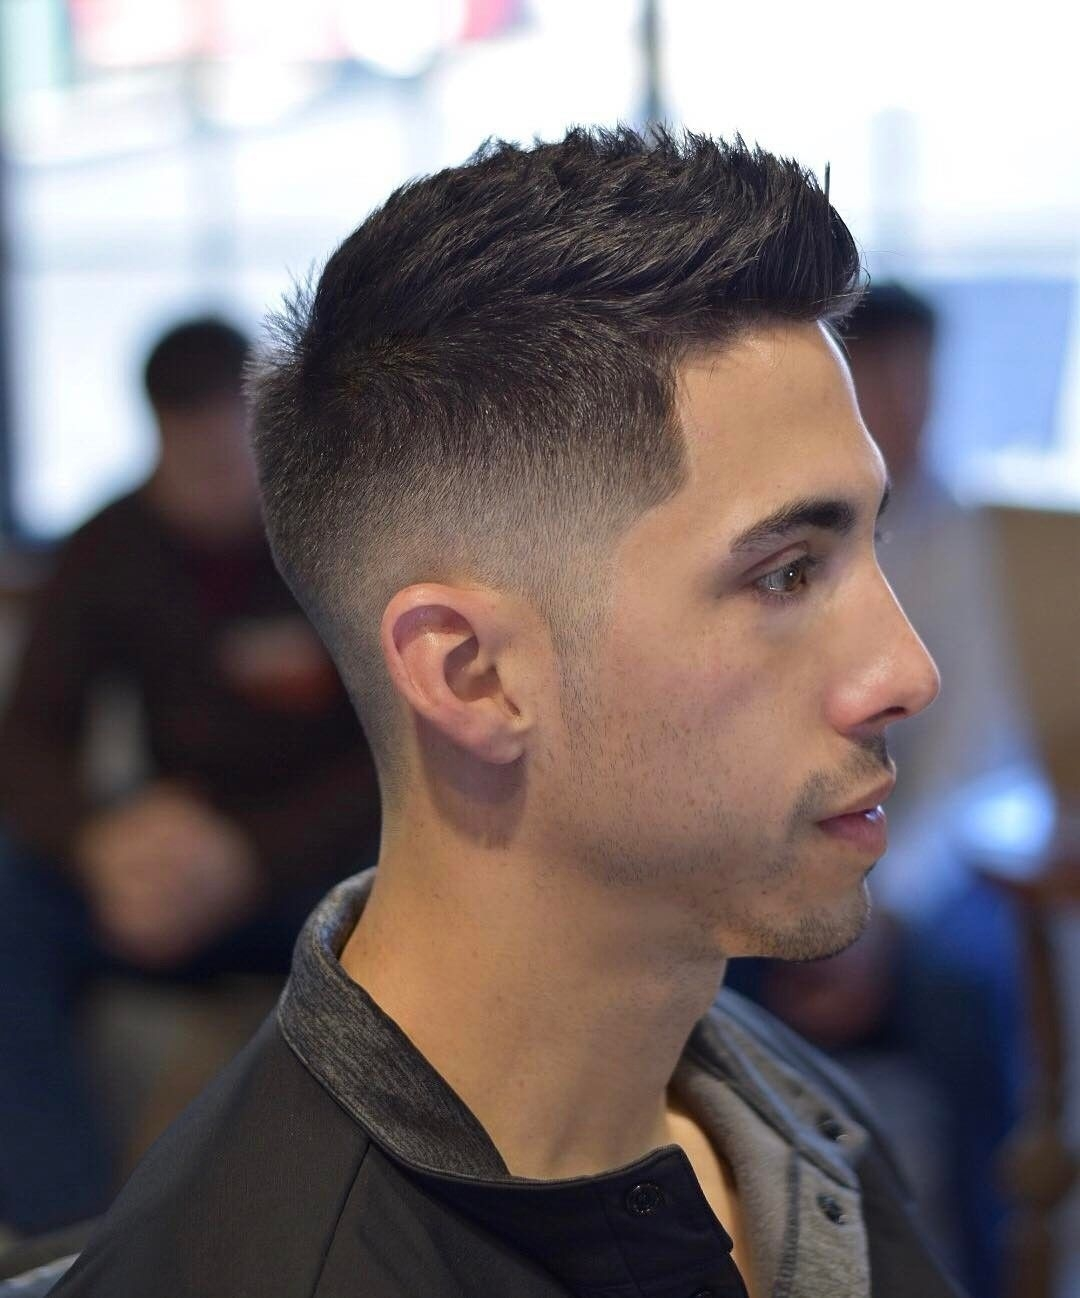 10+ Best Military Haircut Styles For Guys Tags: Military within Indian Army Best Hairstyle